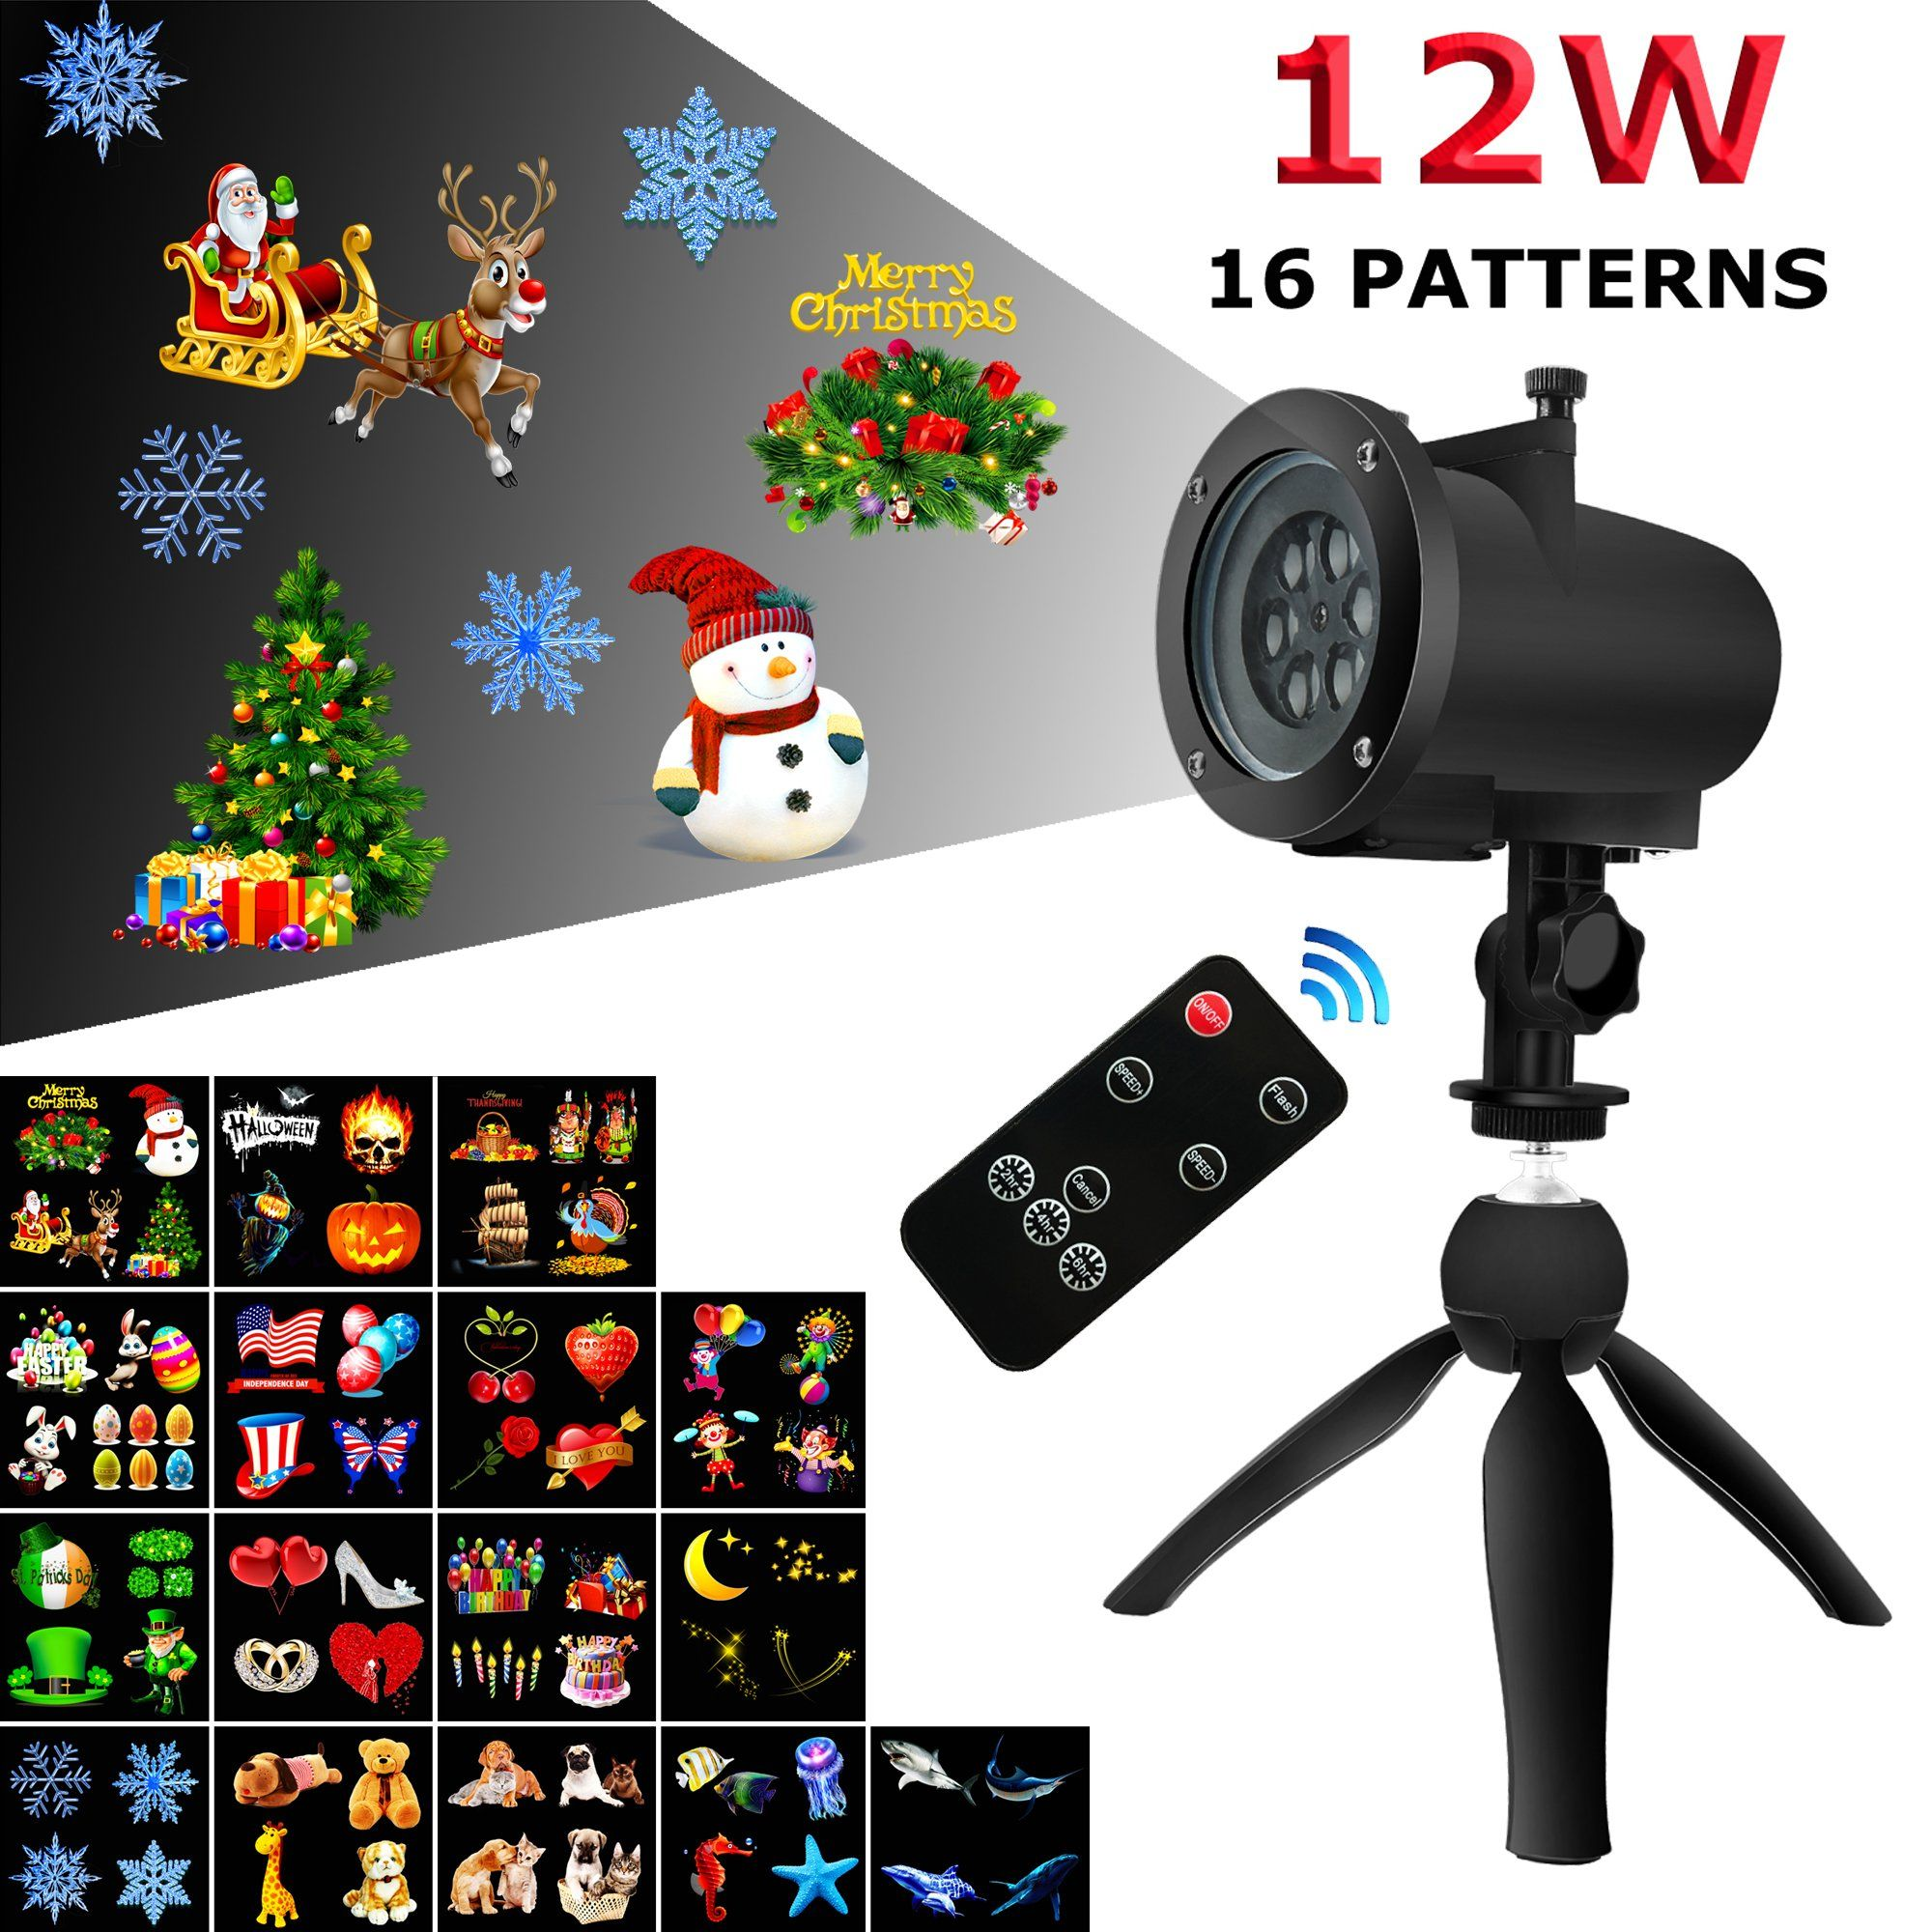 Toha 12w led christmas projector light with 16 pattern slides for toha led christmas projector light with 16 pattern slides for halloween thanksgiving easter birthday holiday party indoor and outdoor use aloadofball Images